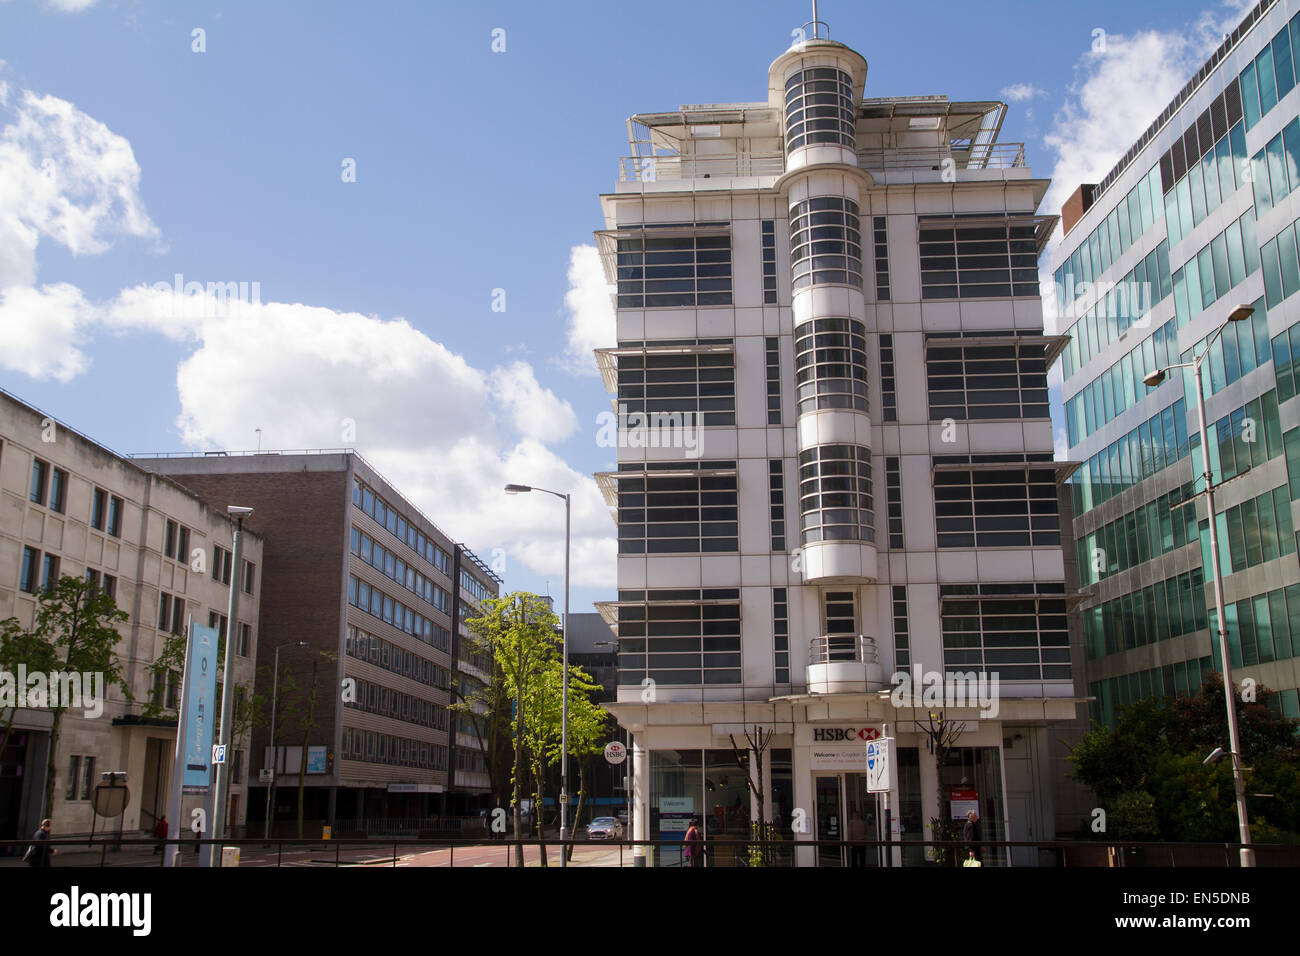 HSBC bank in Croydon Wellesley Road UK - Stock Image